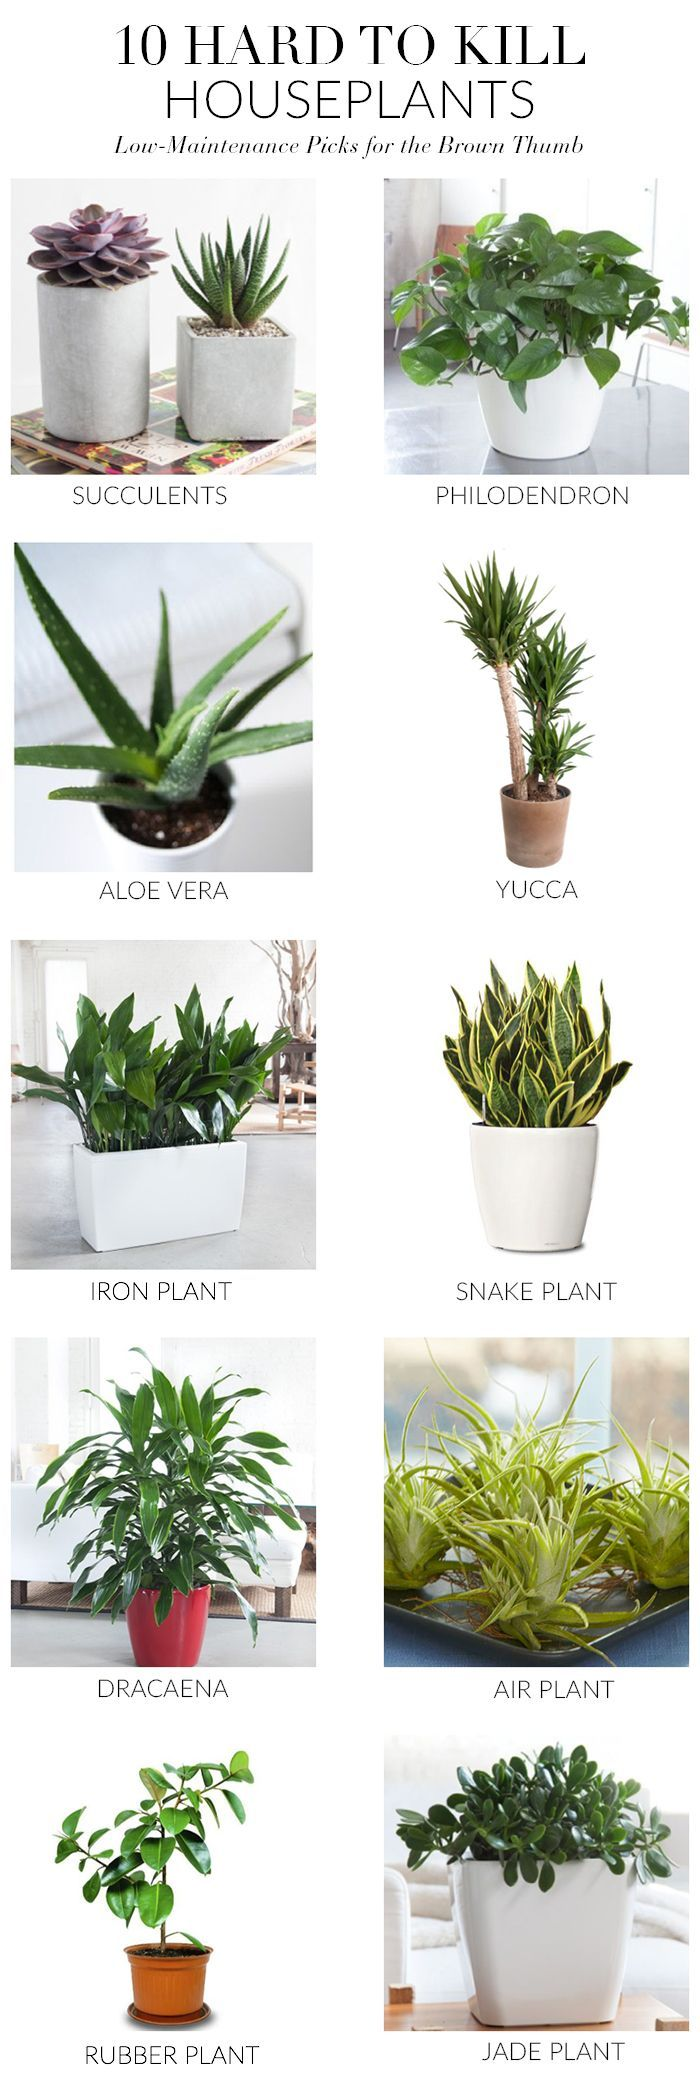 Grow light for houseplants - Jade Plants Need Full Sun In Order To Grow Properly And Need To Be Drained Well